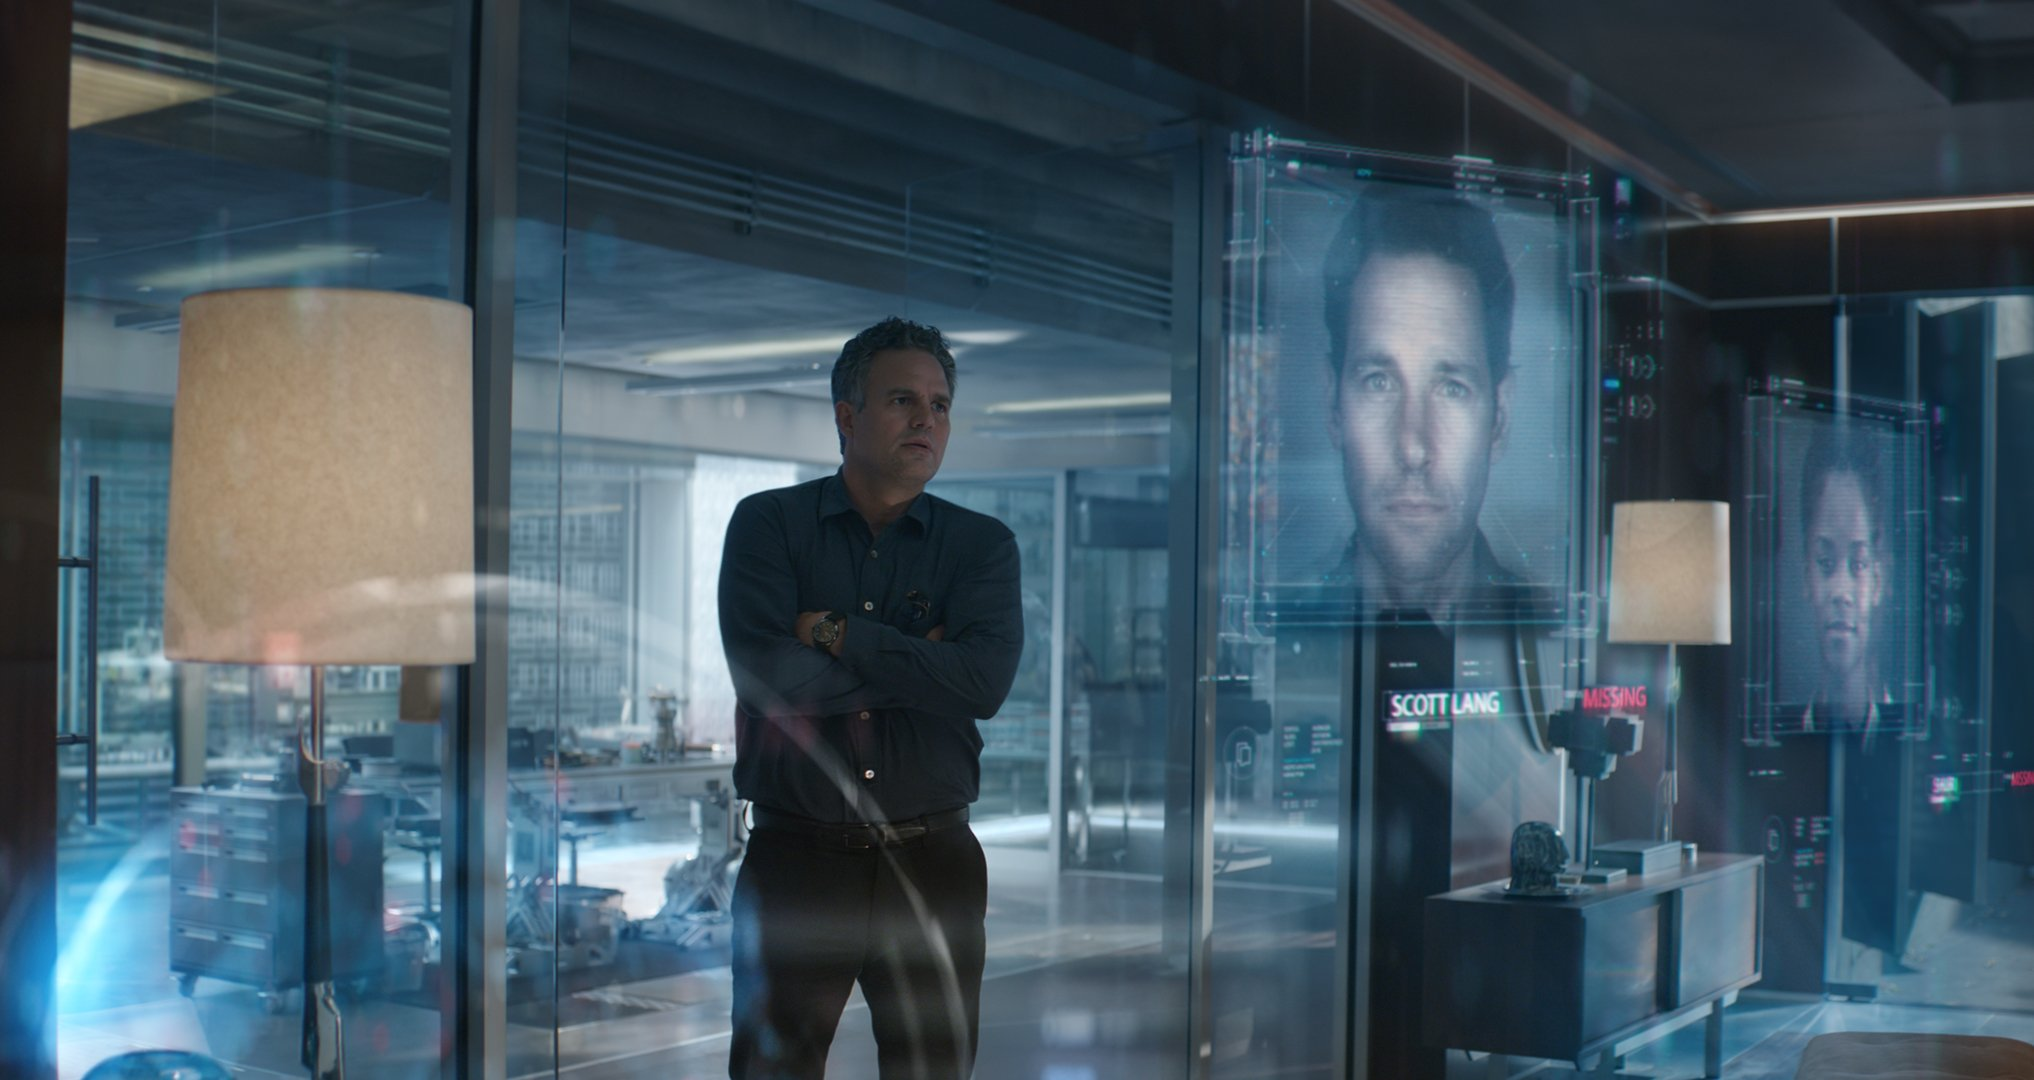 Photo du film Avengers: Endgame avec Bruce Banner (Mark Ruffalo)